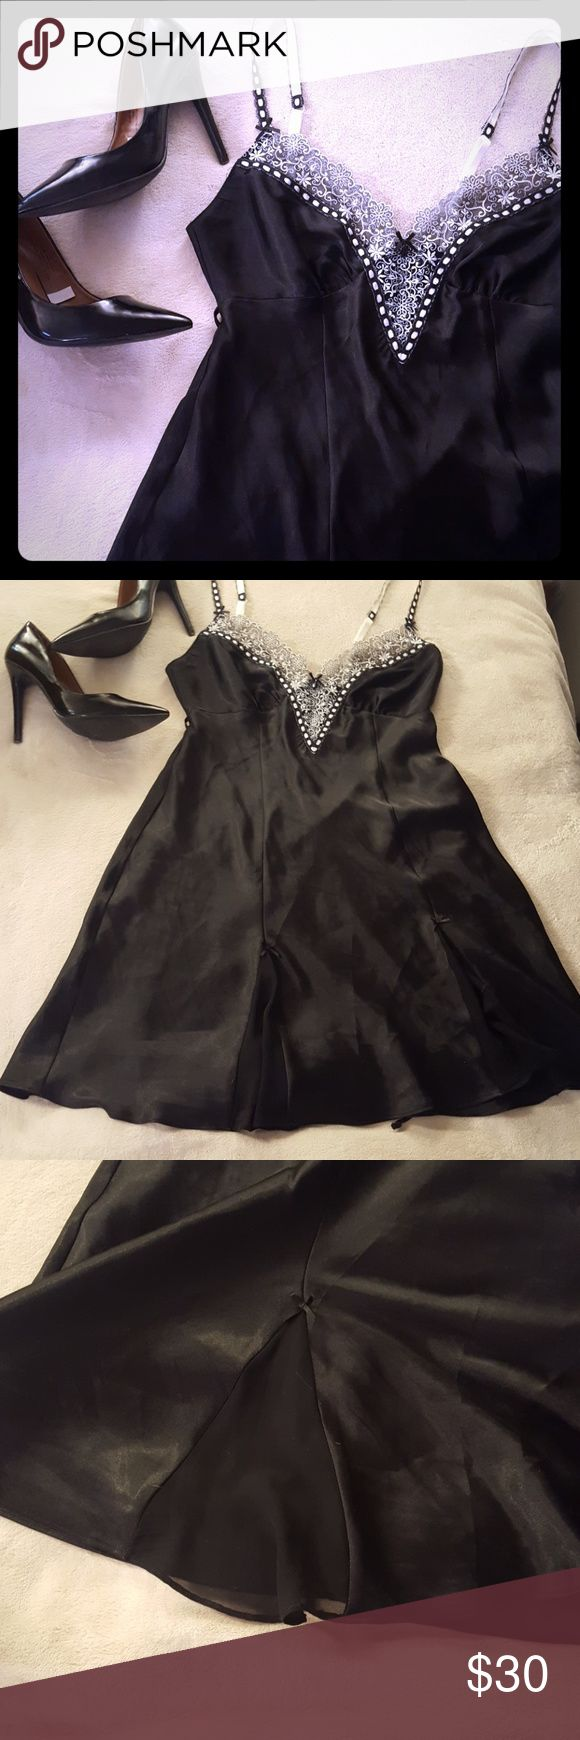 🍷Lingerie gown Lingerie gown short little black dress. Adjustable straps, ties around back. Little bows on the bottom of the dress. nd intimates Intimates & Sleepwear Chemises & Slips